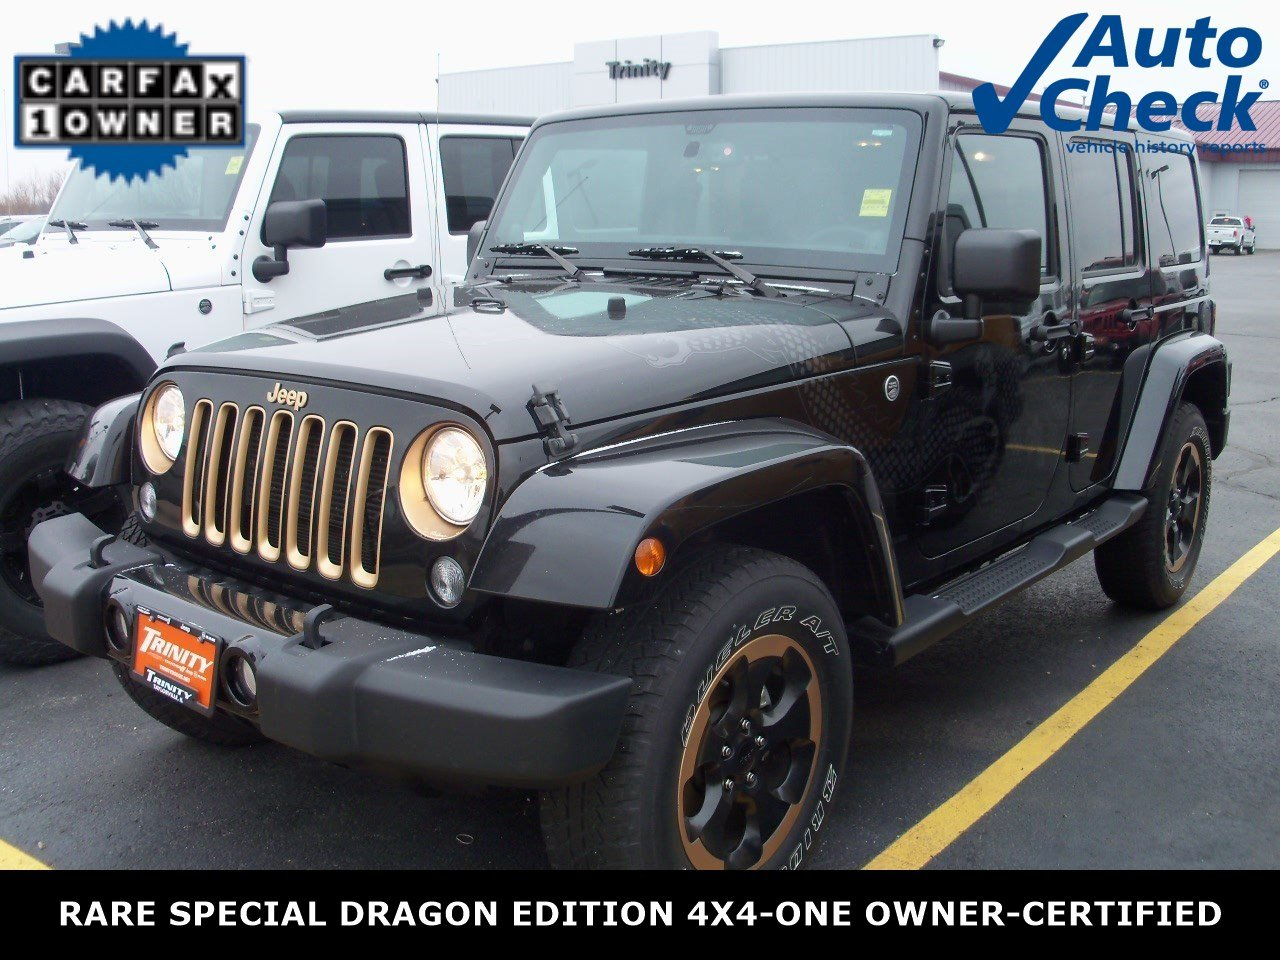 certified used 2014 jeep wrangler unlimited dragon edition 4x4 for sale in taylorville il. Black Bedroom Furniture Sets. Home Design Ideas